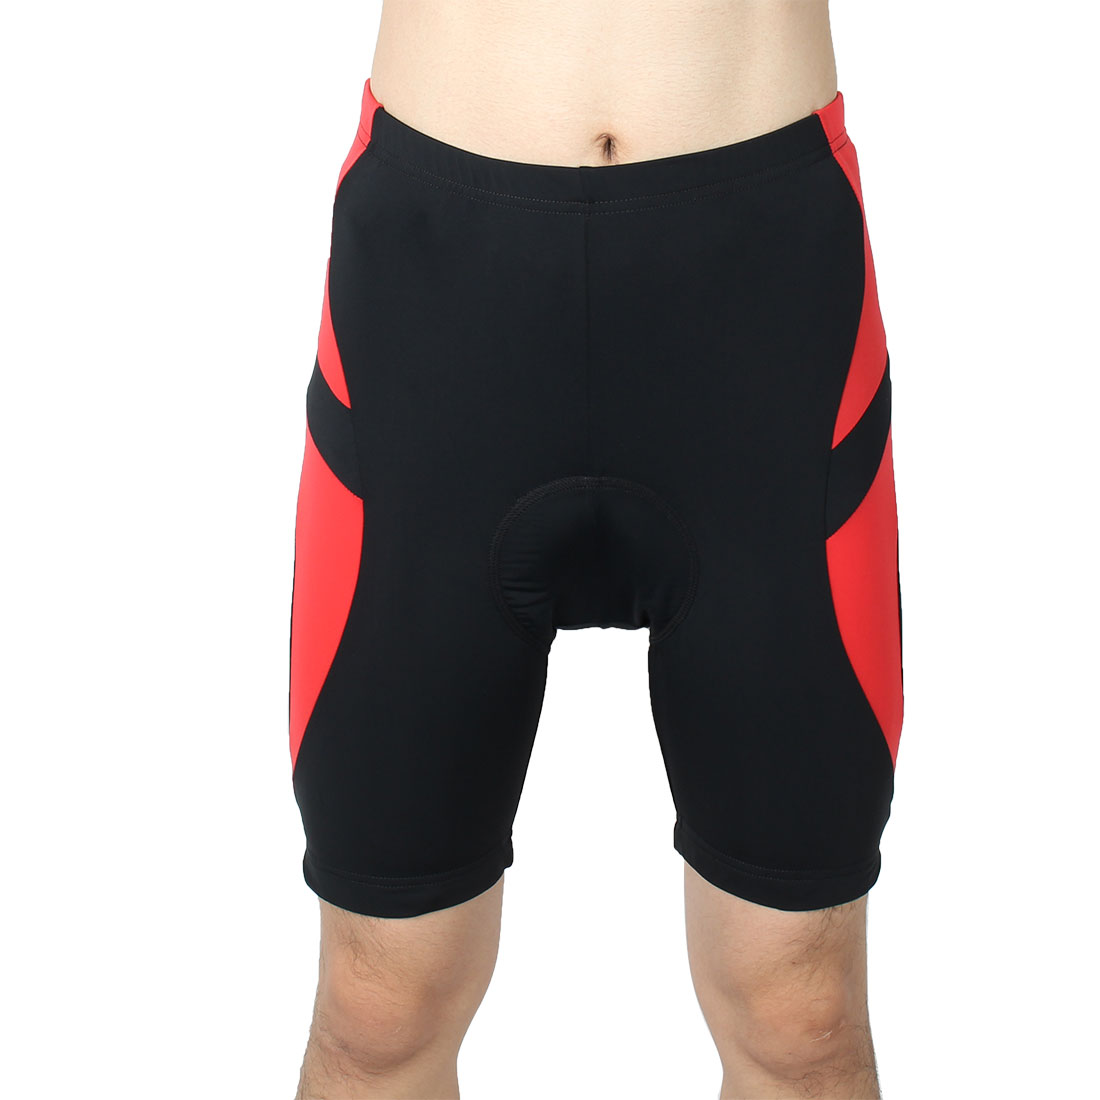 Men Outdoor Bicycle Underwear 3D Padded Breathable Cycling Sport Shorts Half Pants Black Red L (W 38)